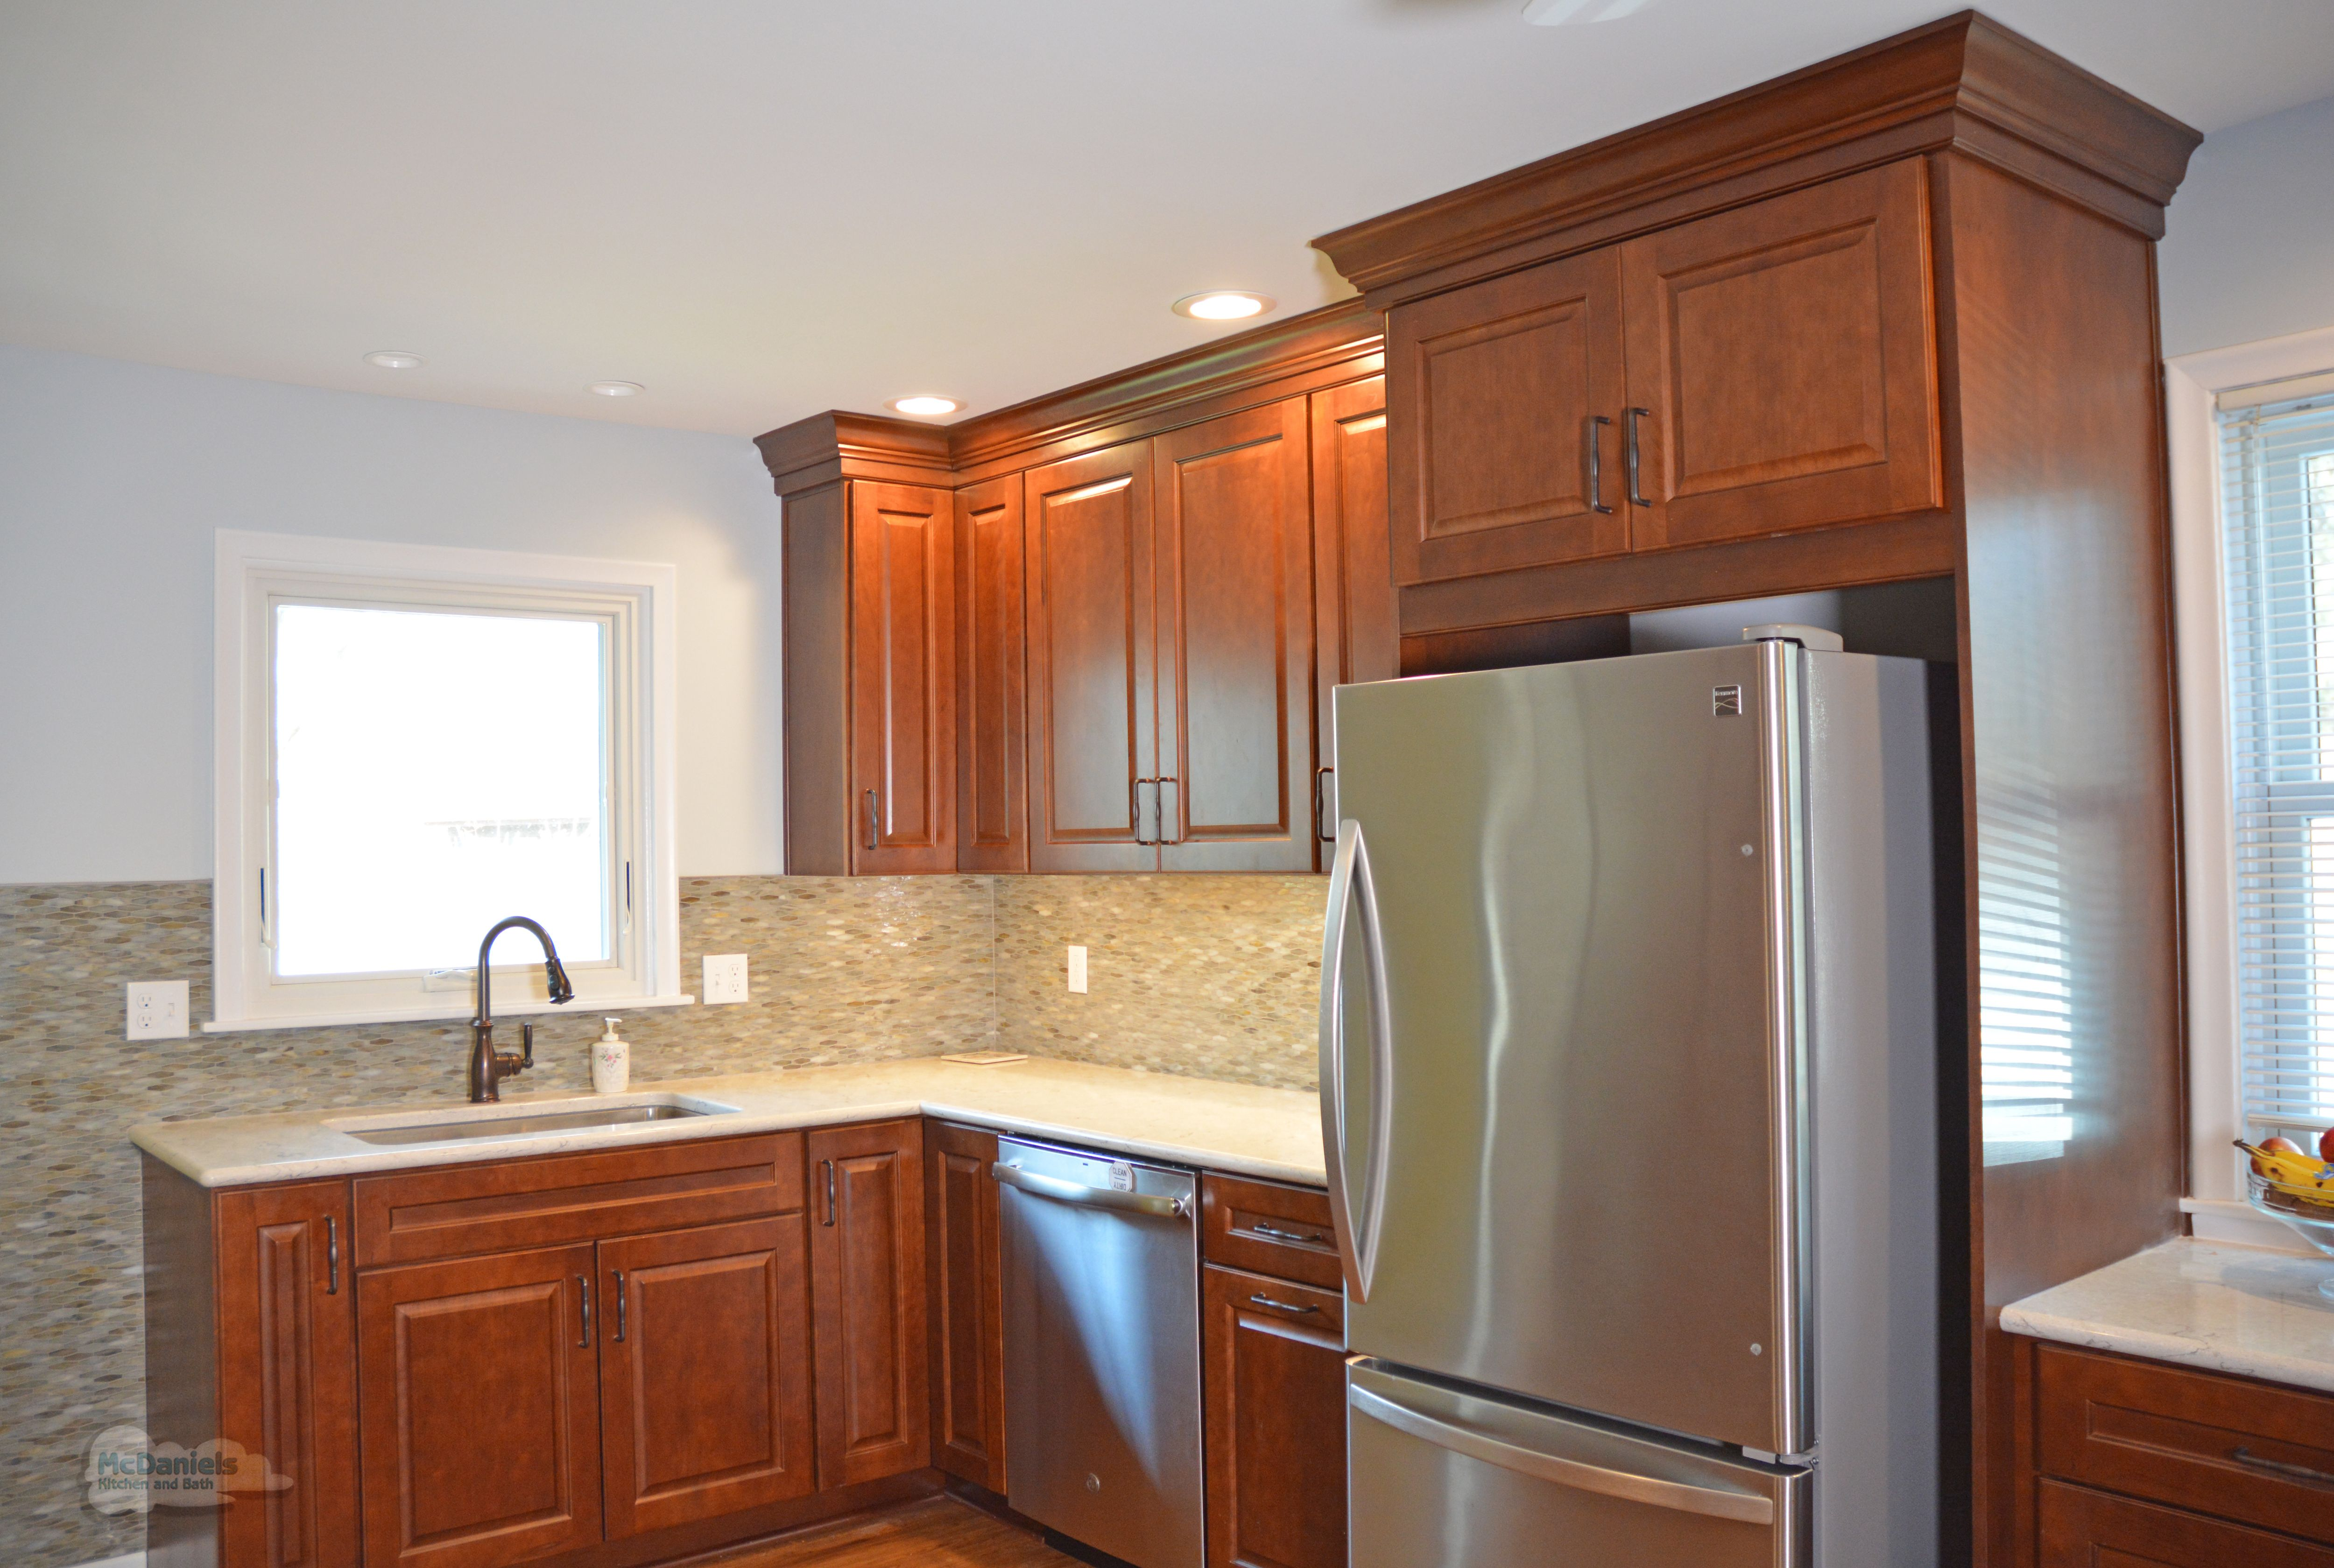 This Lansing Mi Kitchen Design Features Diamond Vibe By Masterbrand Kitchen Cabinets In A Warm W Kitchen And Bath Remodeling Kitchen Design Built In Microwave